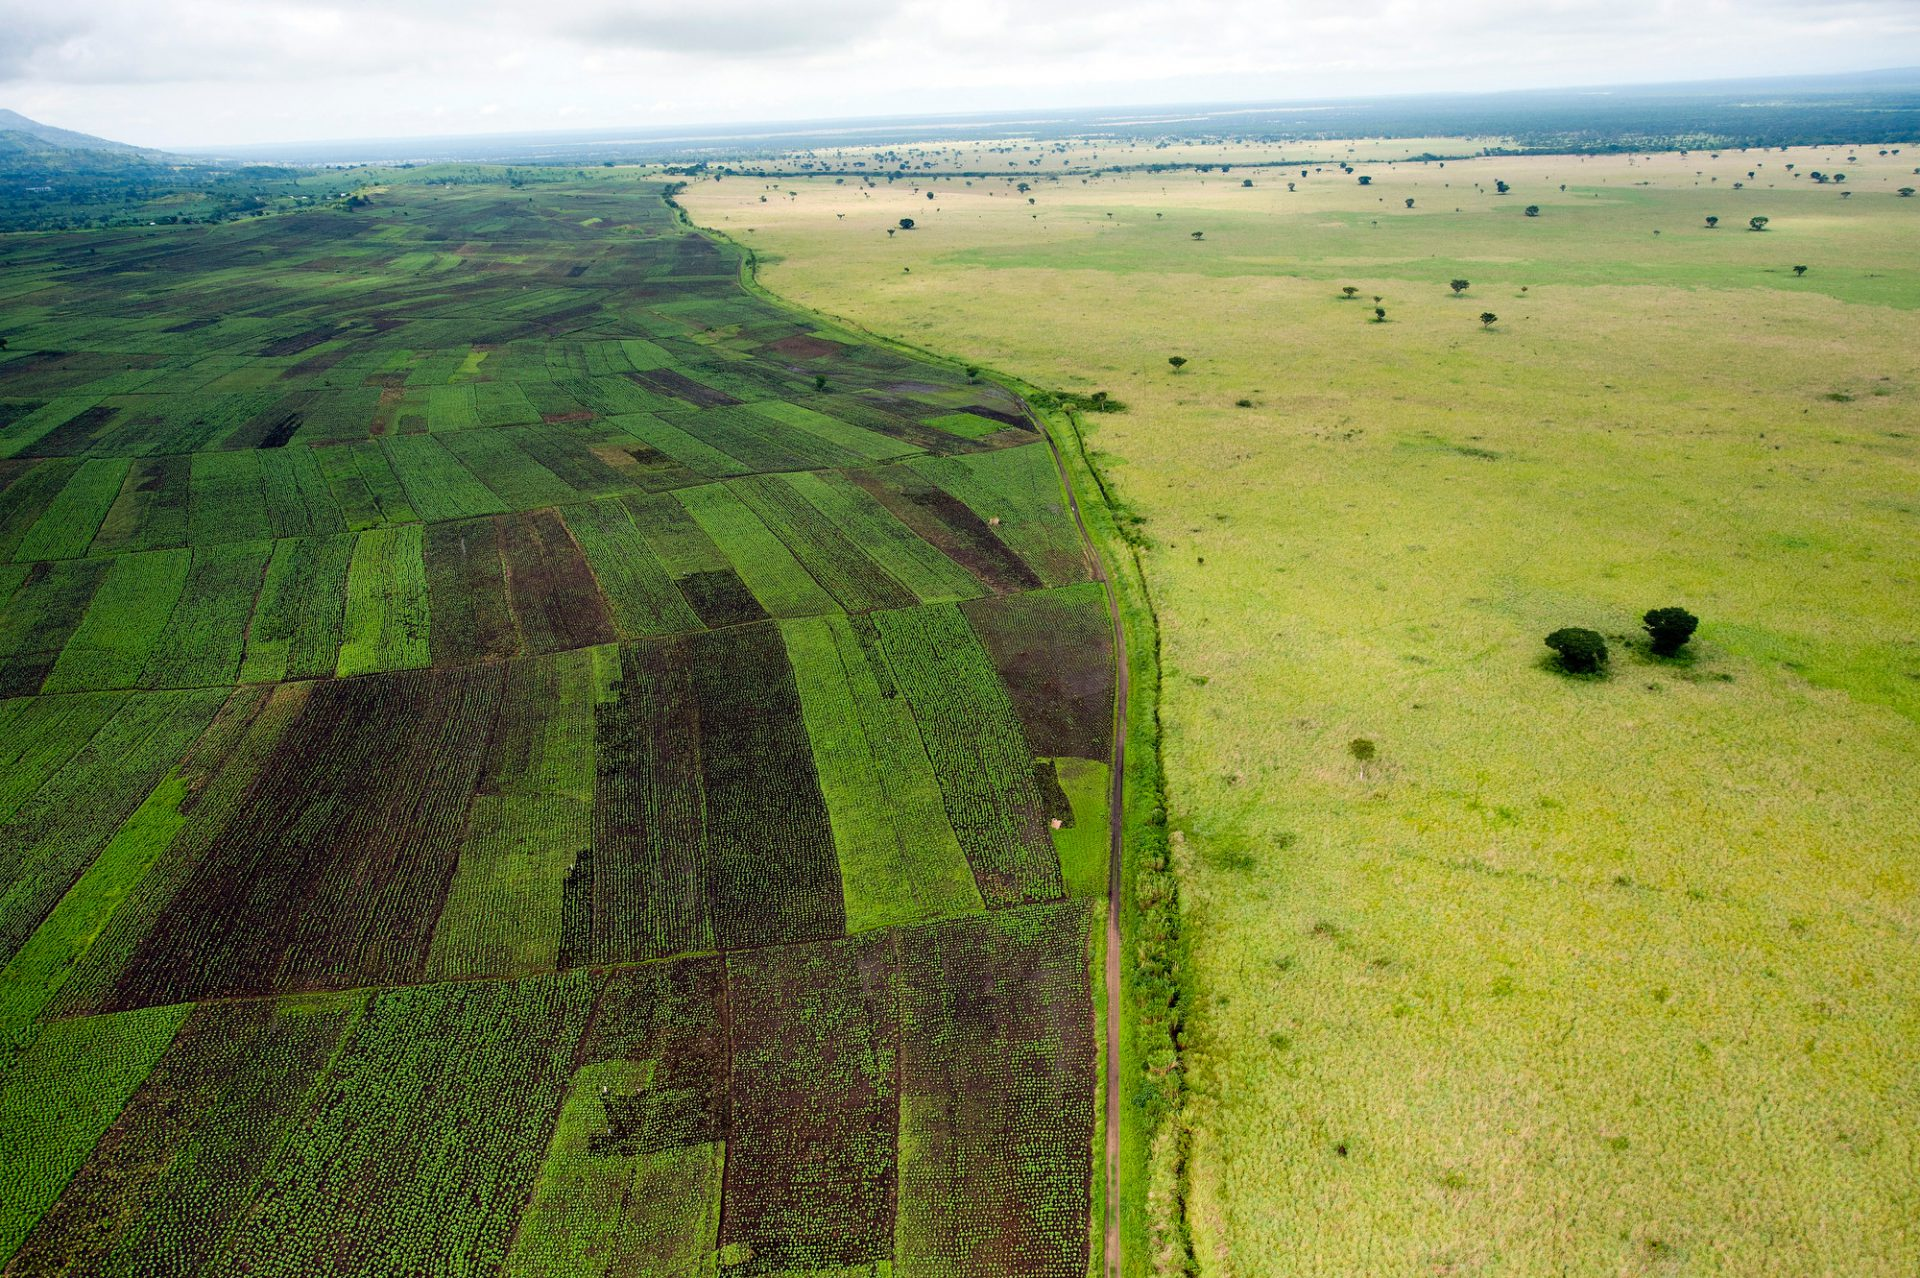 Photo: Agricultural plots meet Queen Elizabeth National Park at the base of the Ankole Hills.